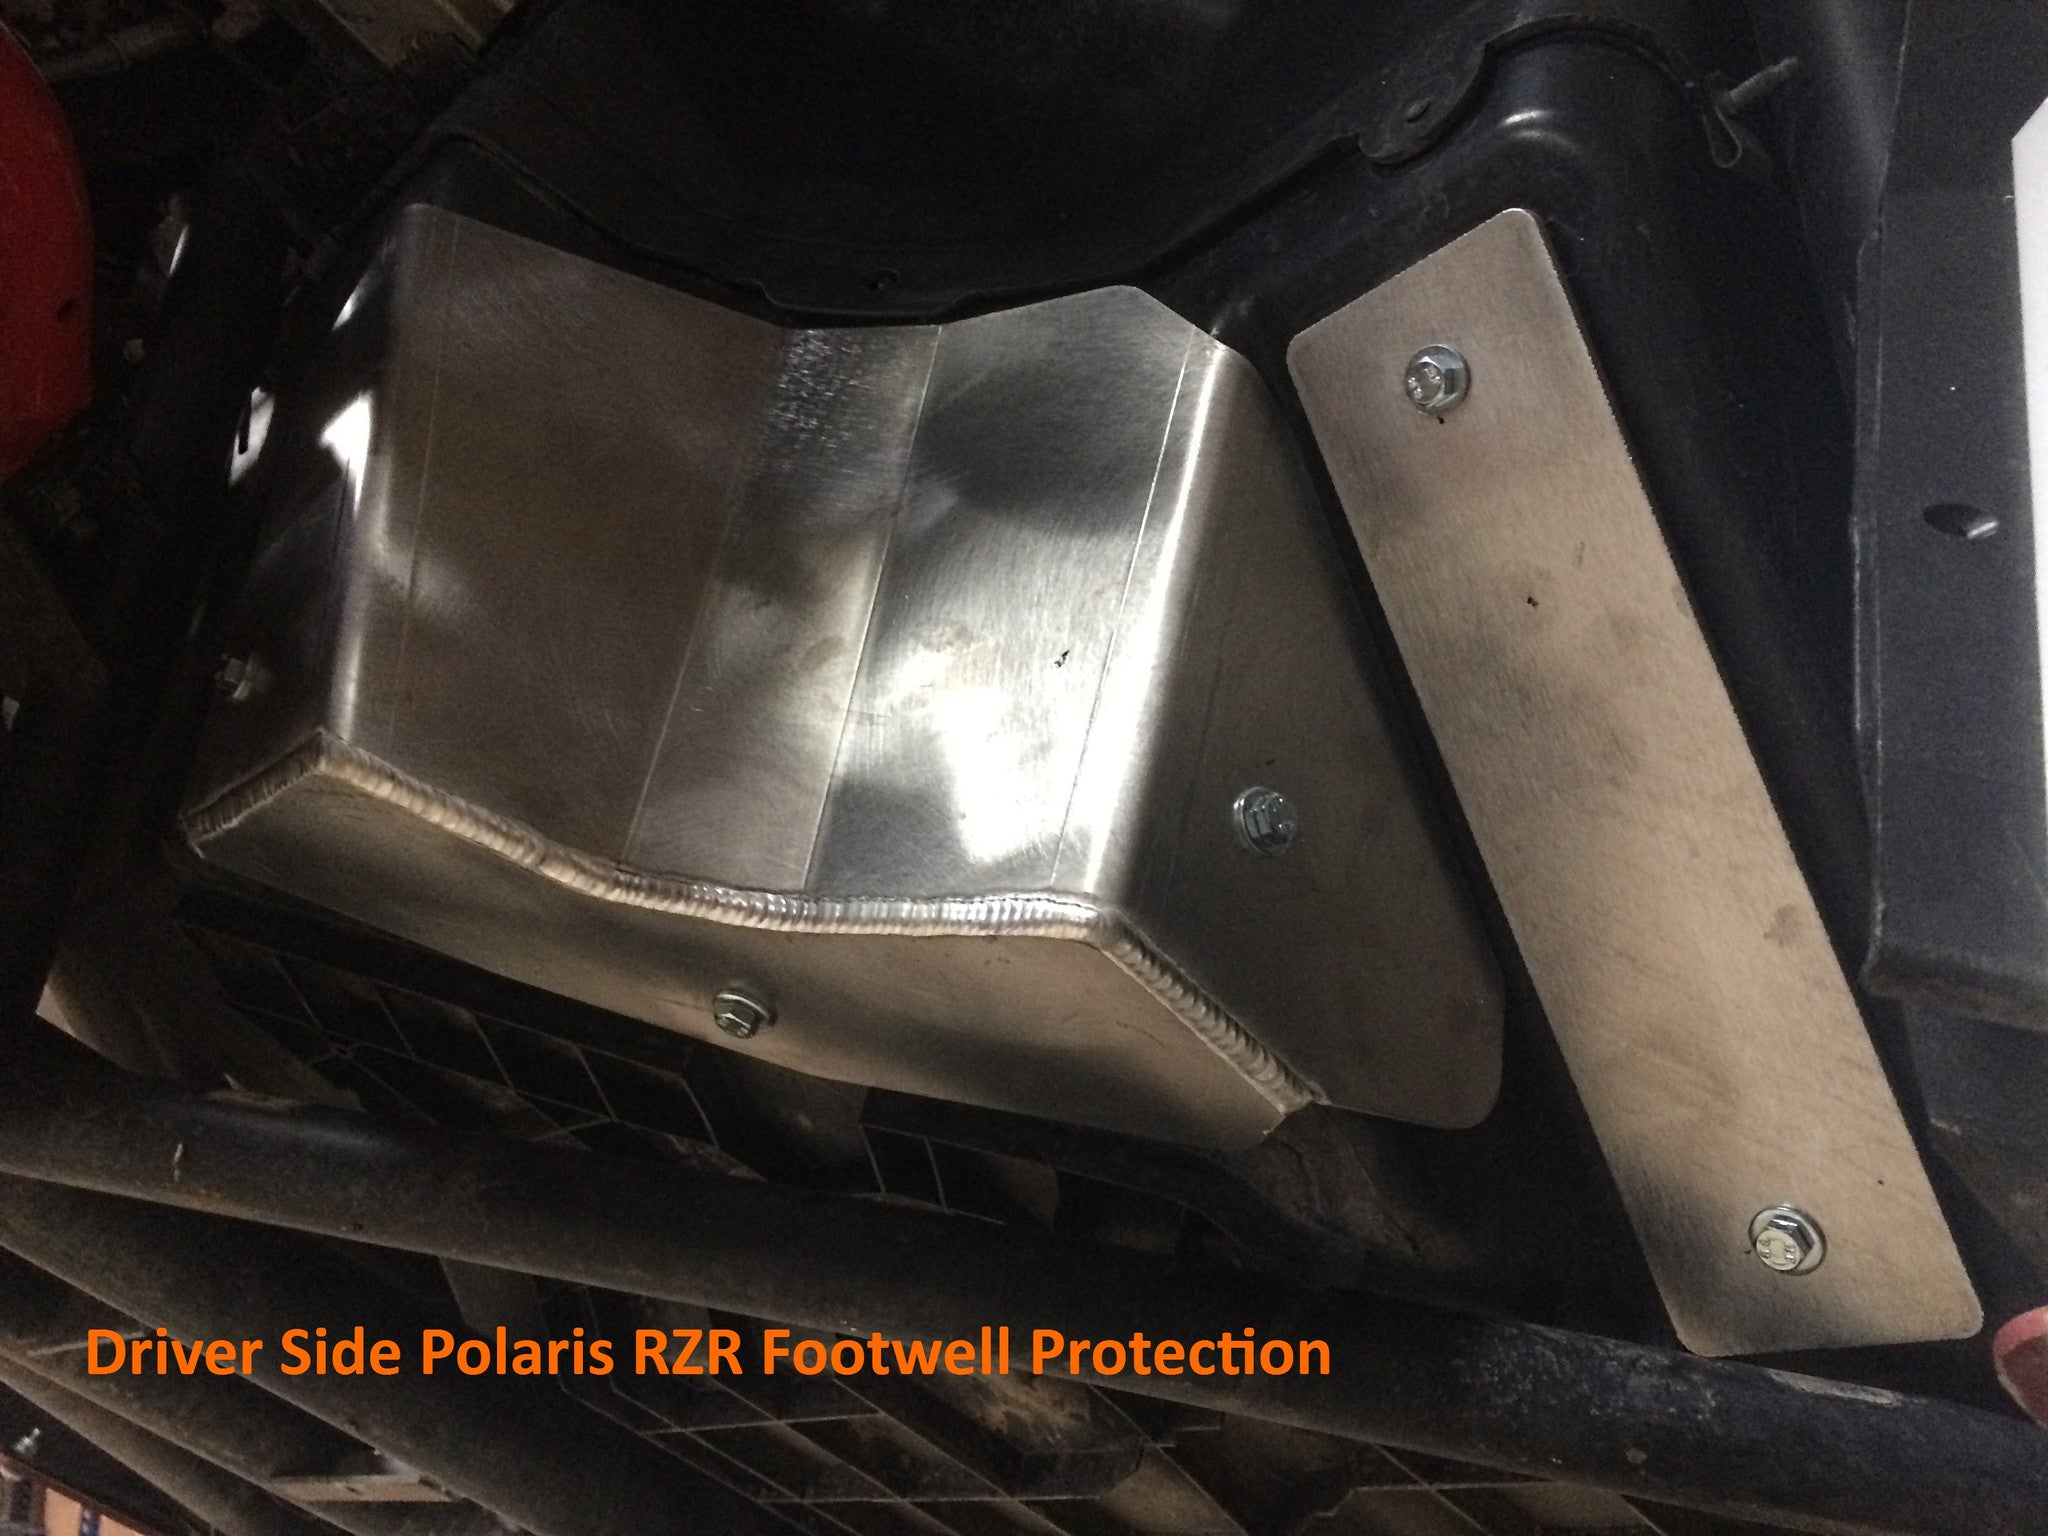 2-Piece Footwell Skid Plate Set, Polaris RZR XP 1000 High-Lifter